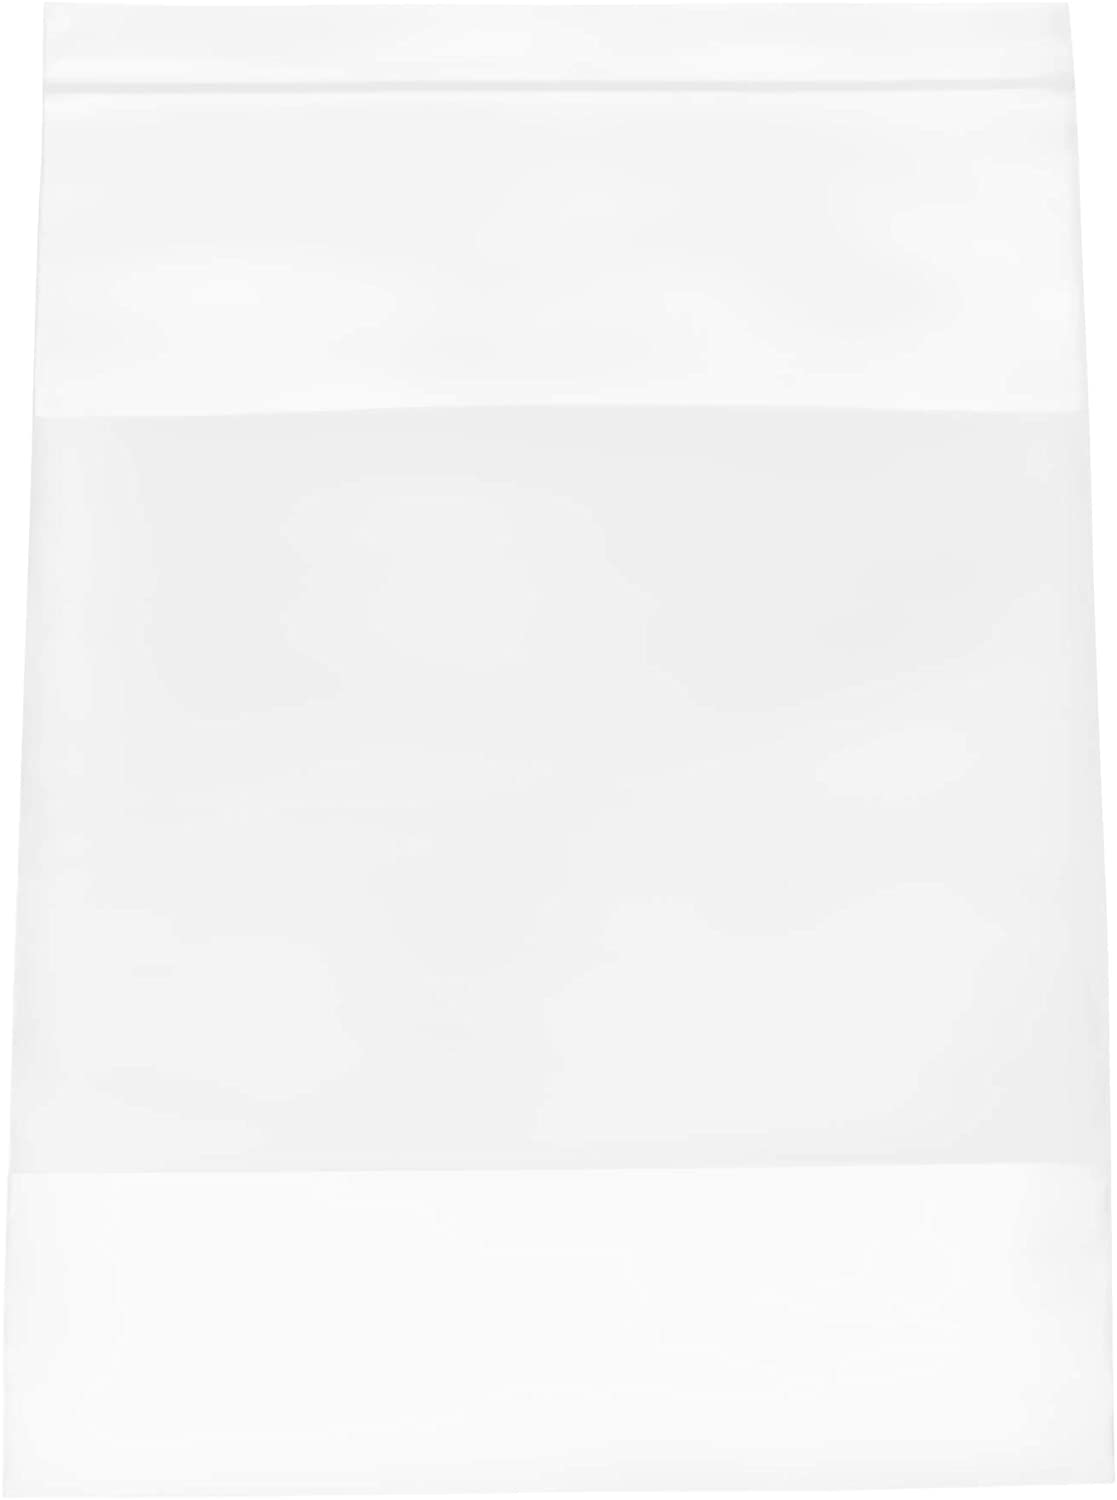 Clear Zipper Bag, Reclosable Write-On Poly Bags, 8x10 Inch, 500 Pack